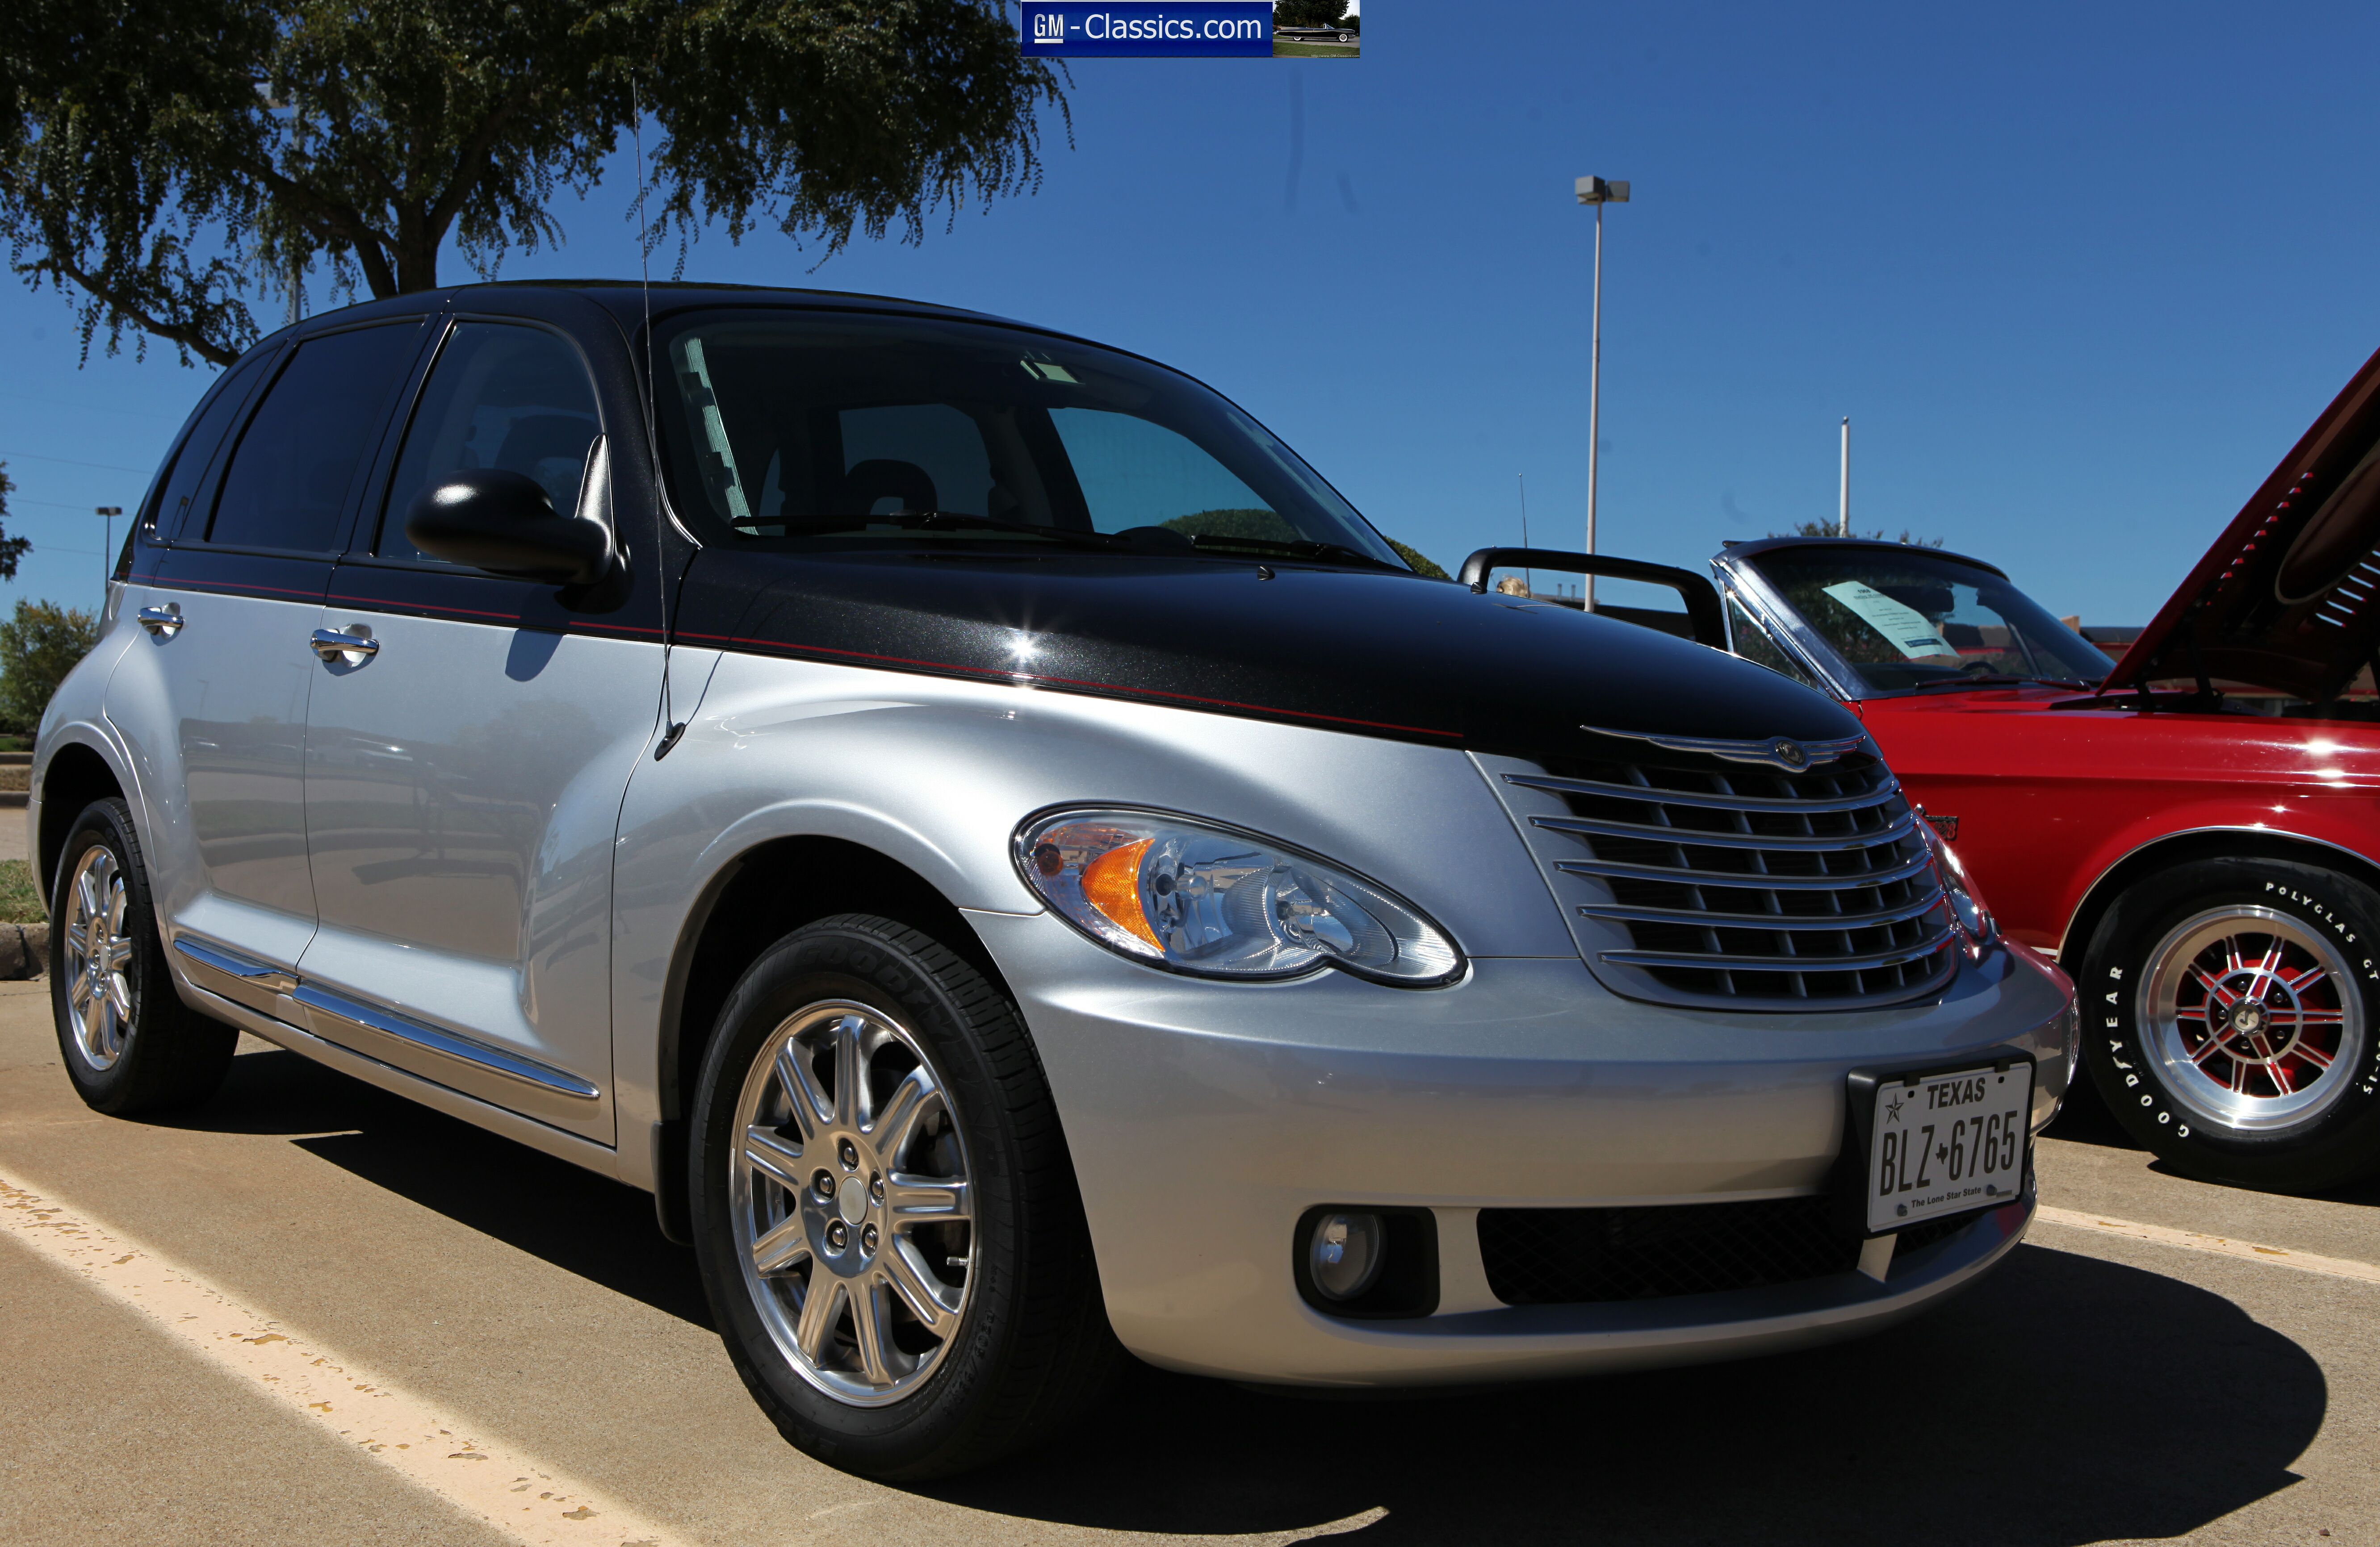 sell used 2010 chrysler pt cruiser couture edition loaded and collector owned in carrollton. Black Bedroom Furniture Sets. Home Design Ideas